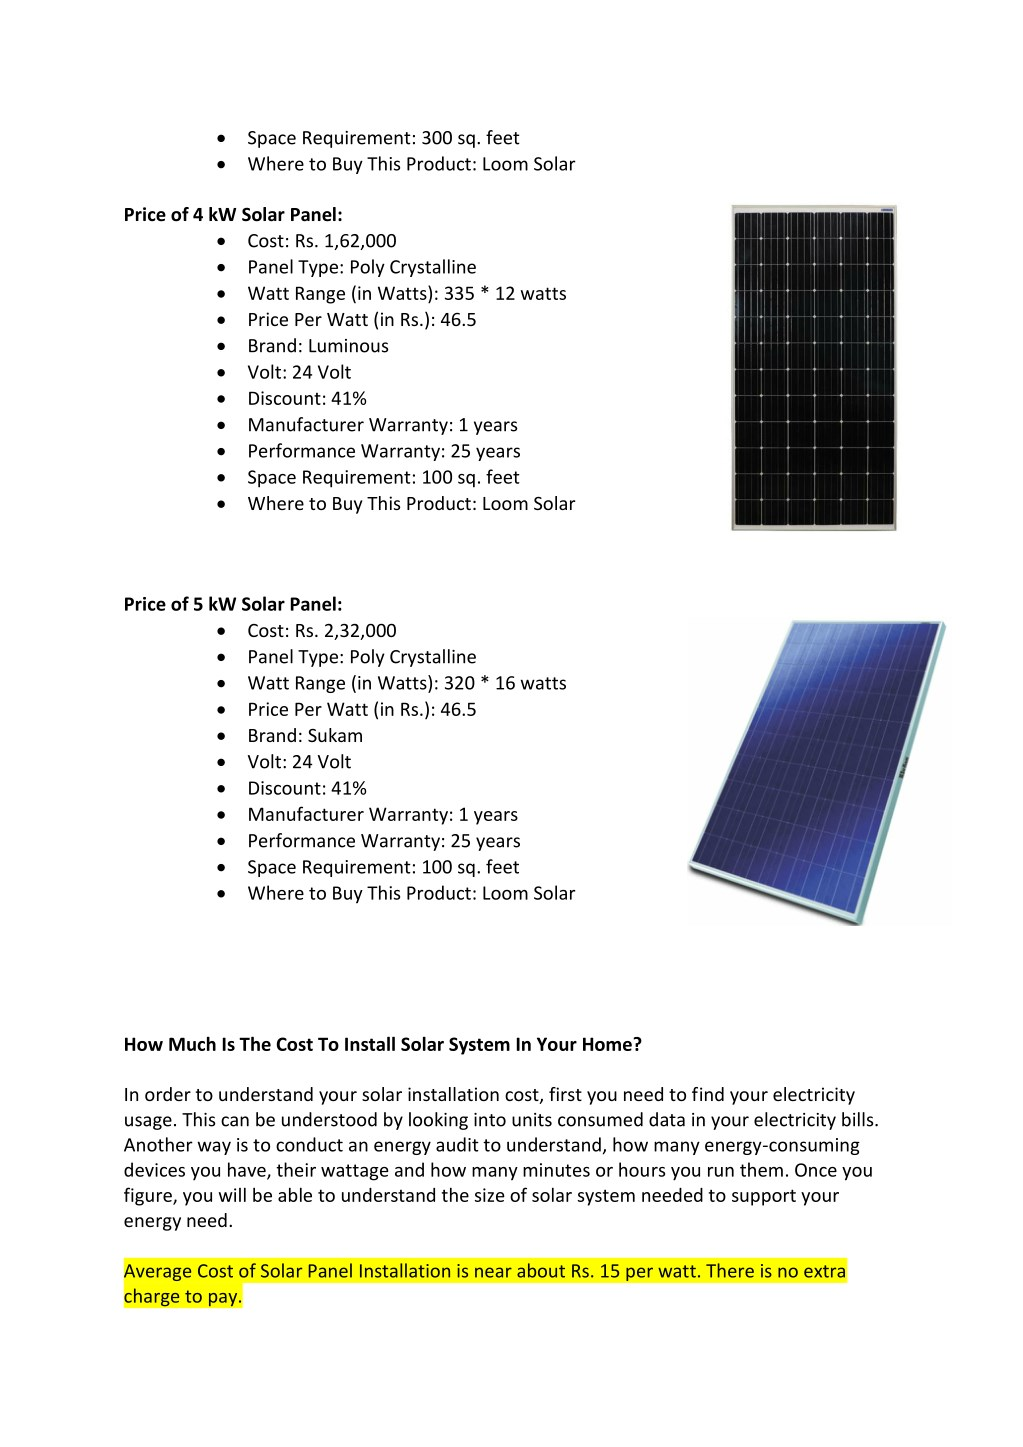 PPT - What Are The Best Solar Panels in India? The Complete